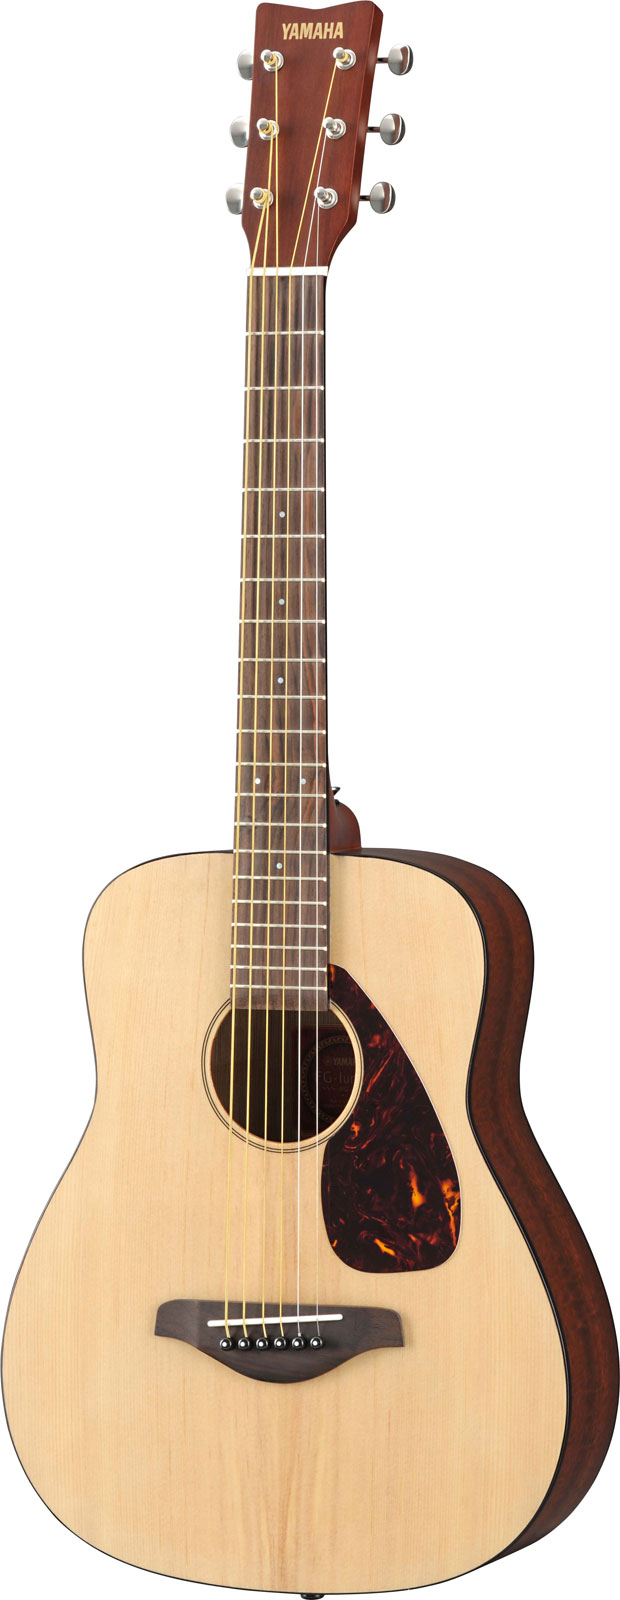 yamaha jr2 3 4 size acoustic guitar gloss with gig bag